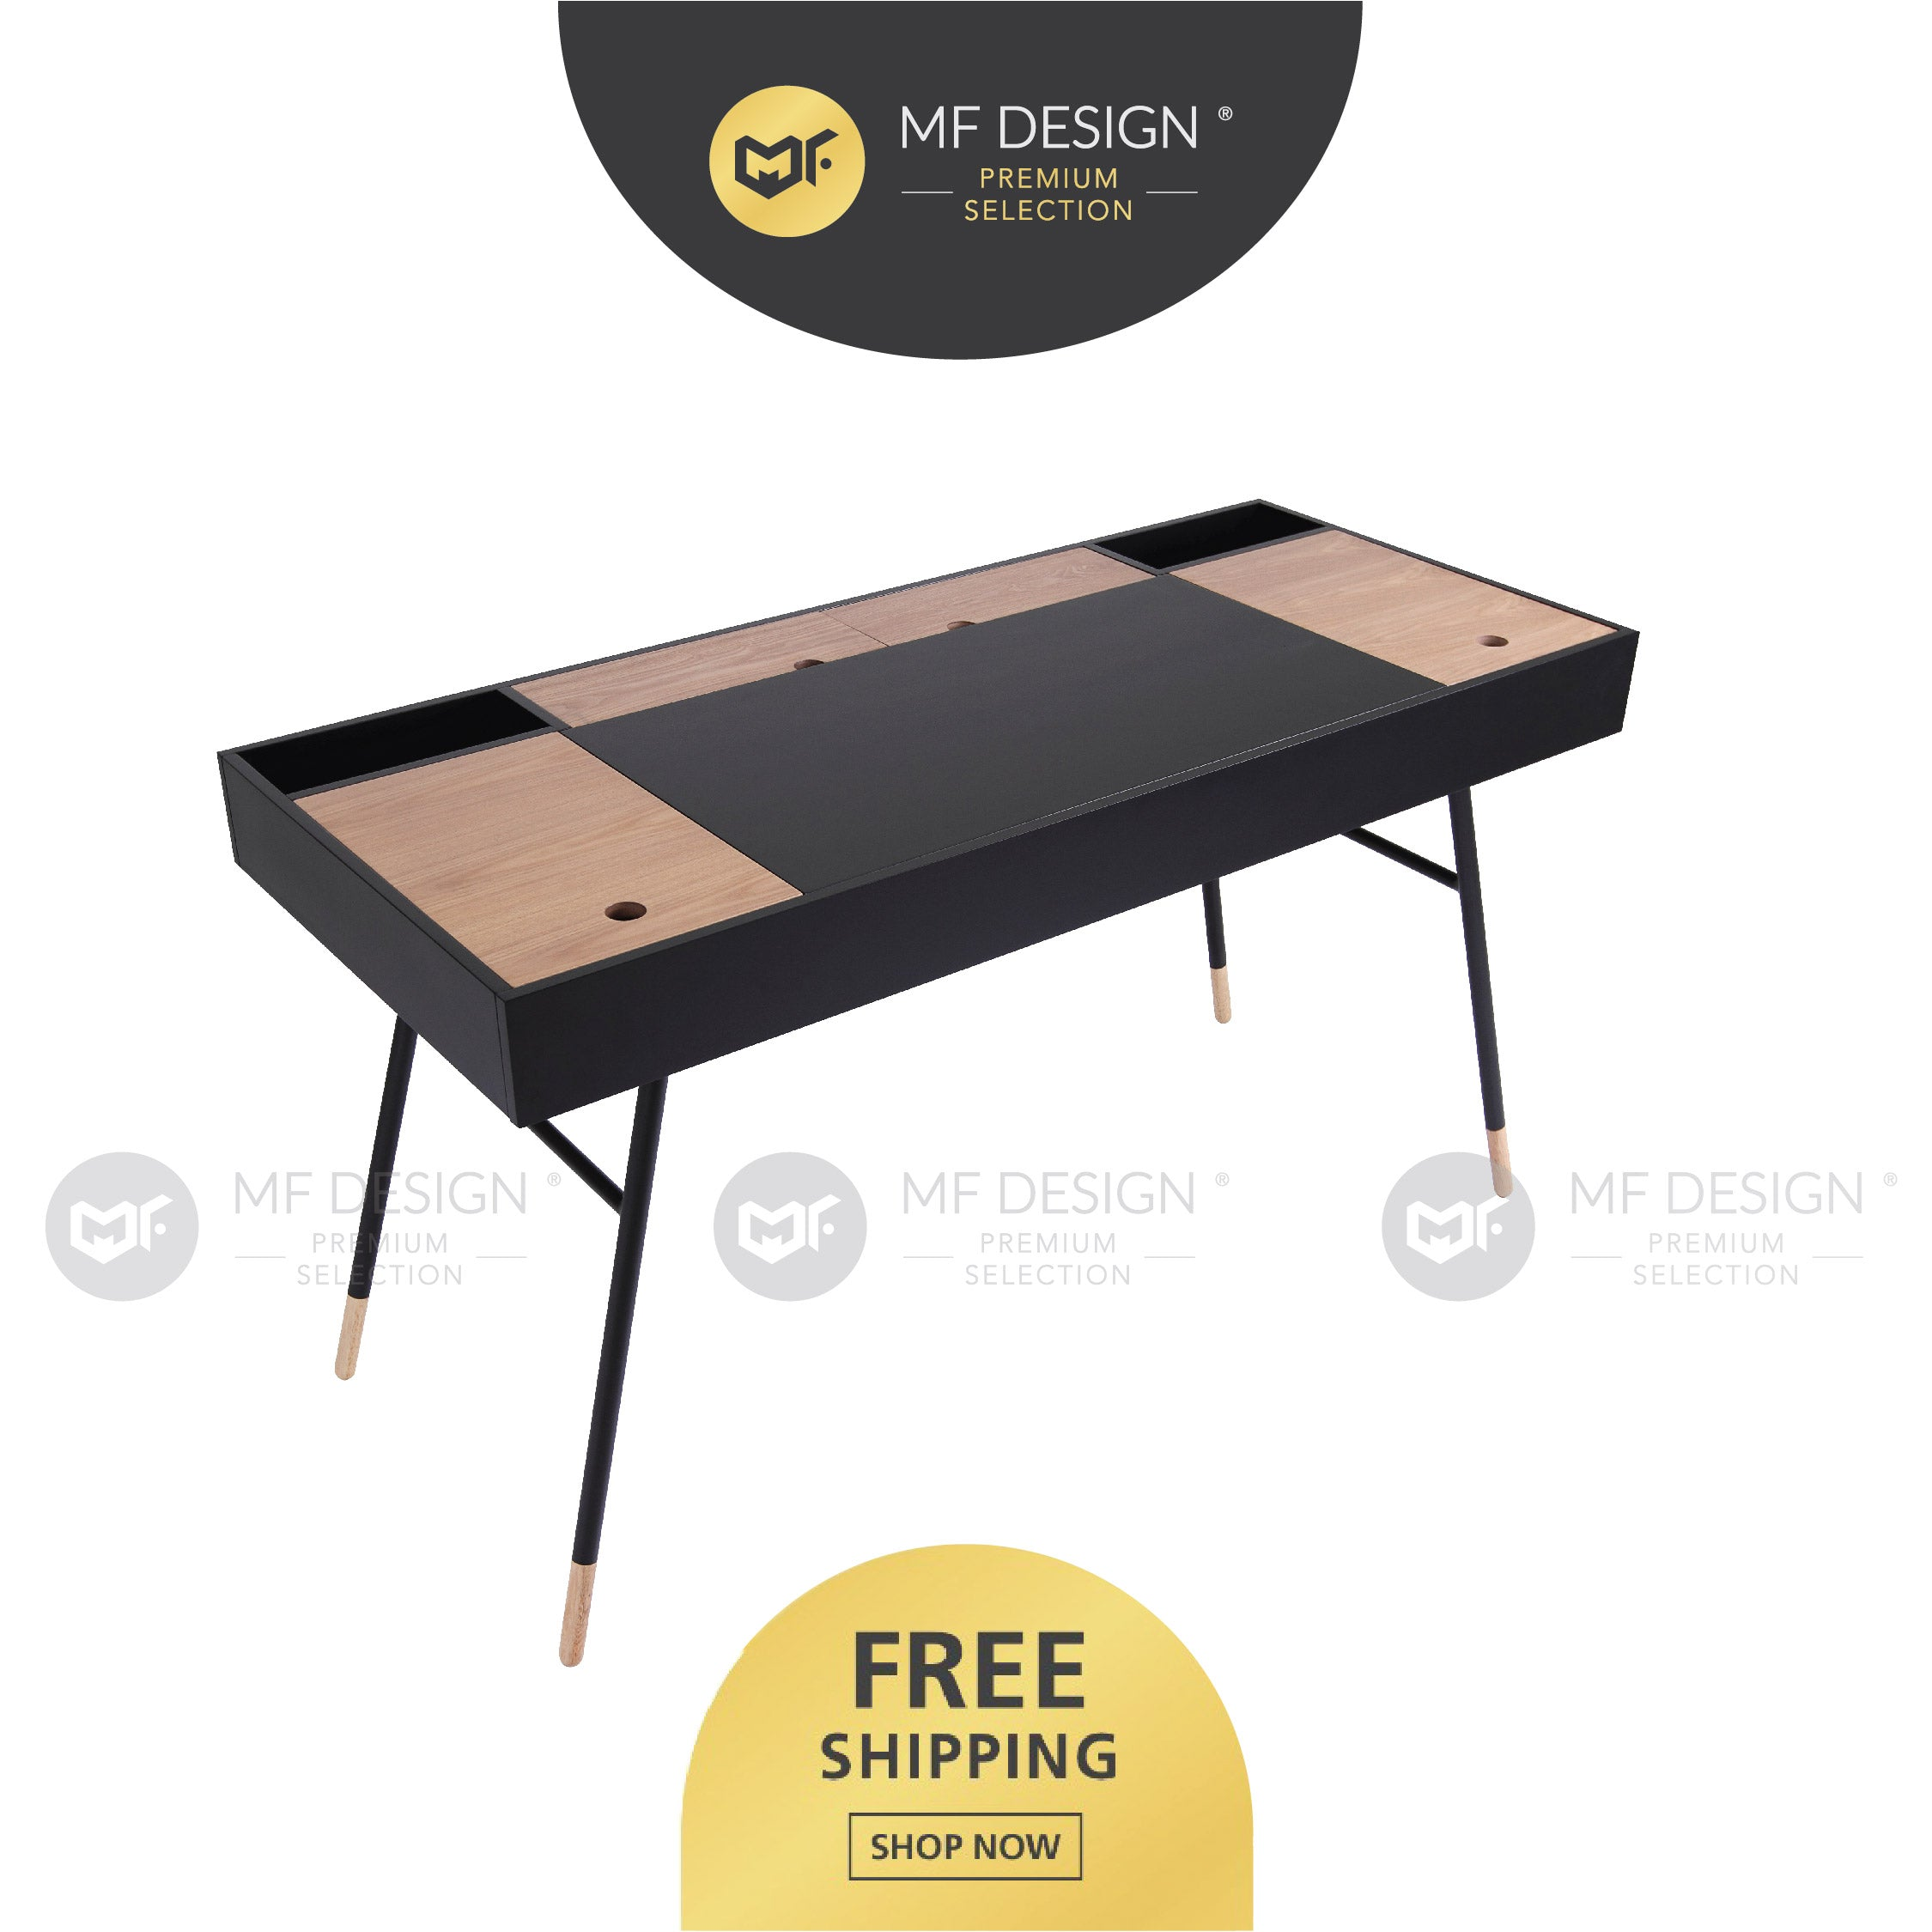 MFD Premium Mila Working Desk